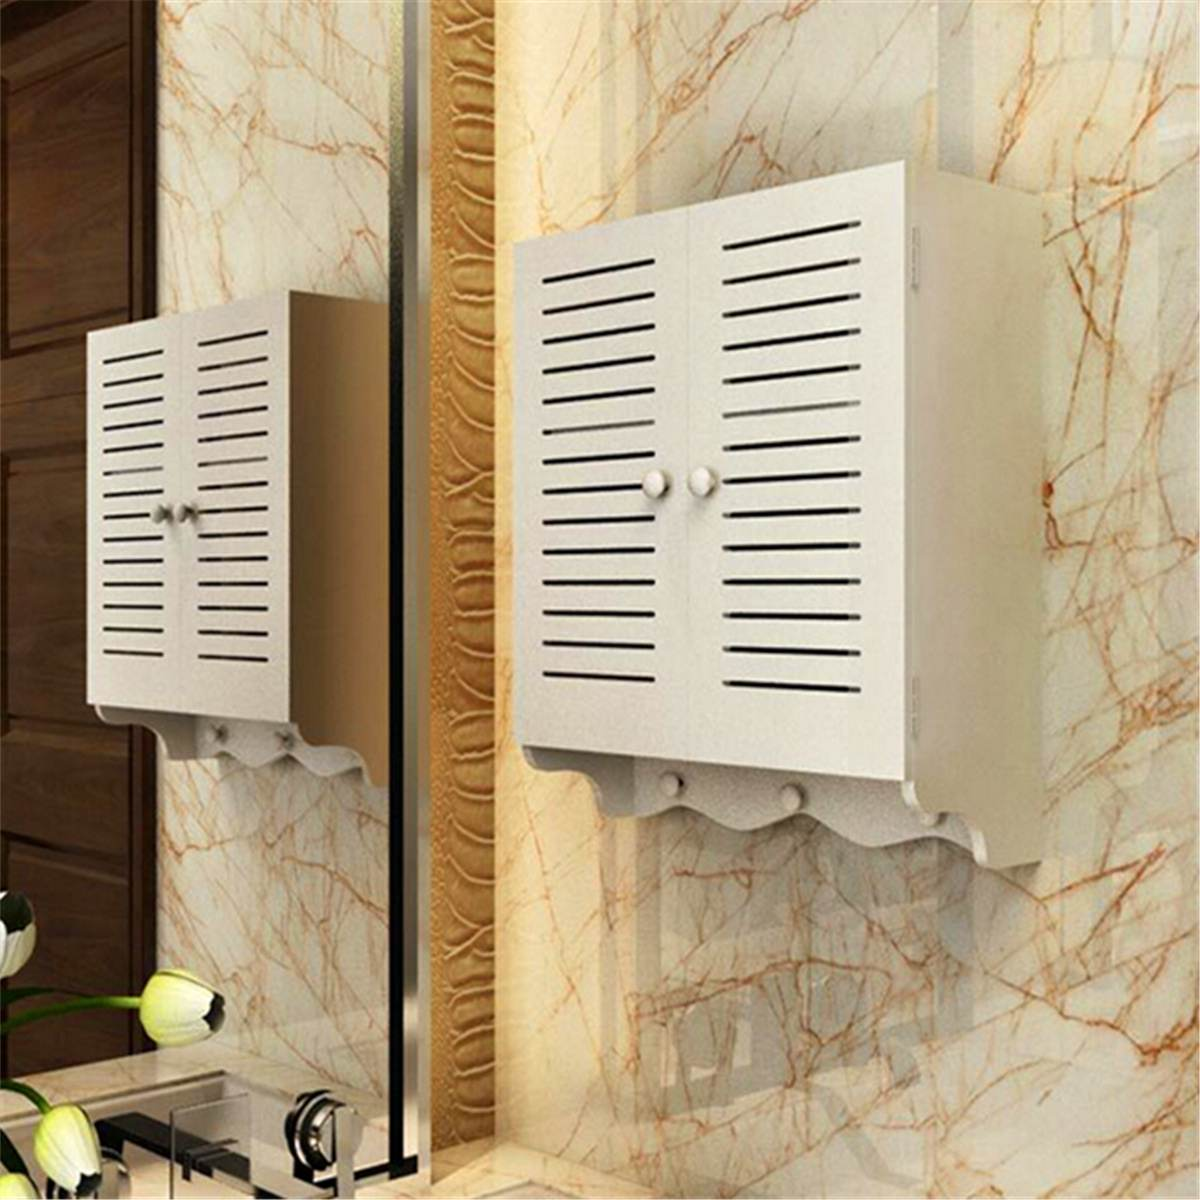 Bathroom Cabinet 40x16x50cm Home Wall Mounted Wood Plastic Plate Toilet Shower Supplies Storage Two Tier Inner Shelves White